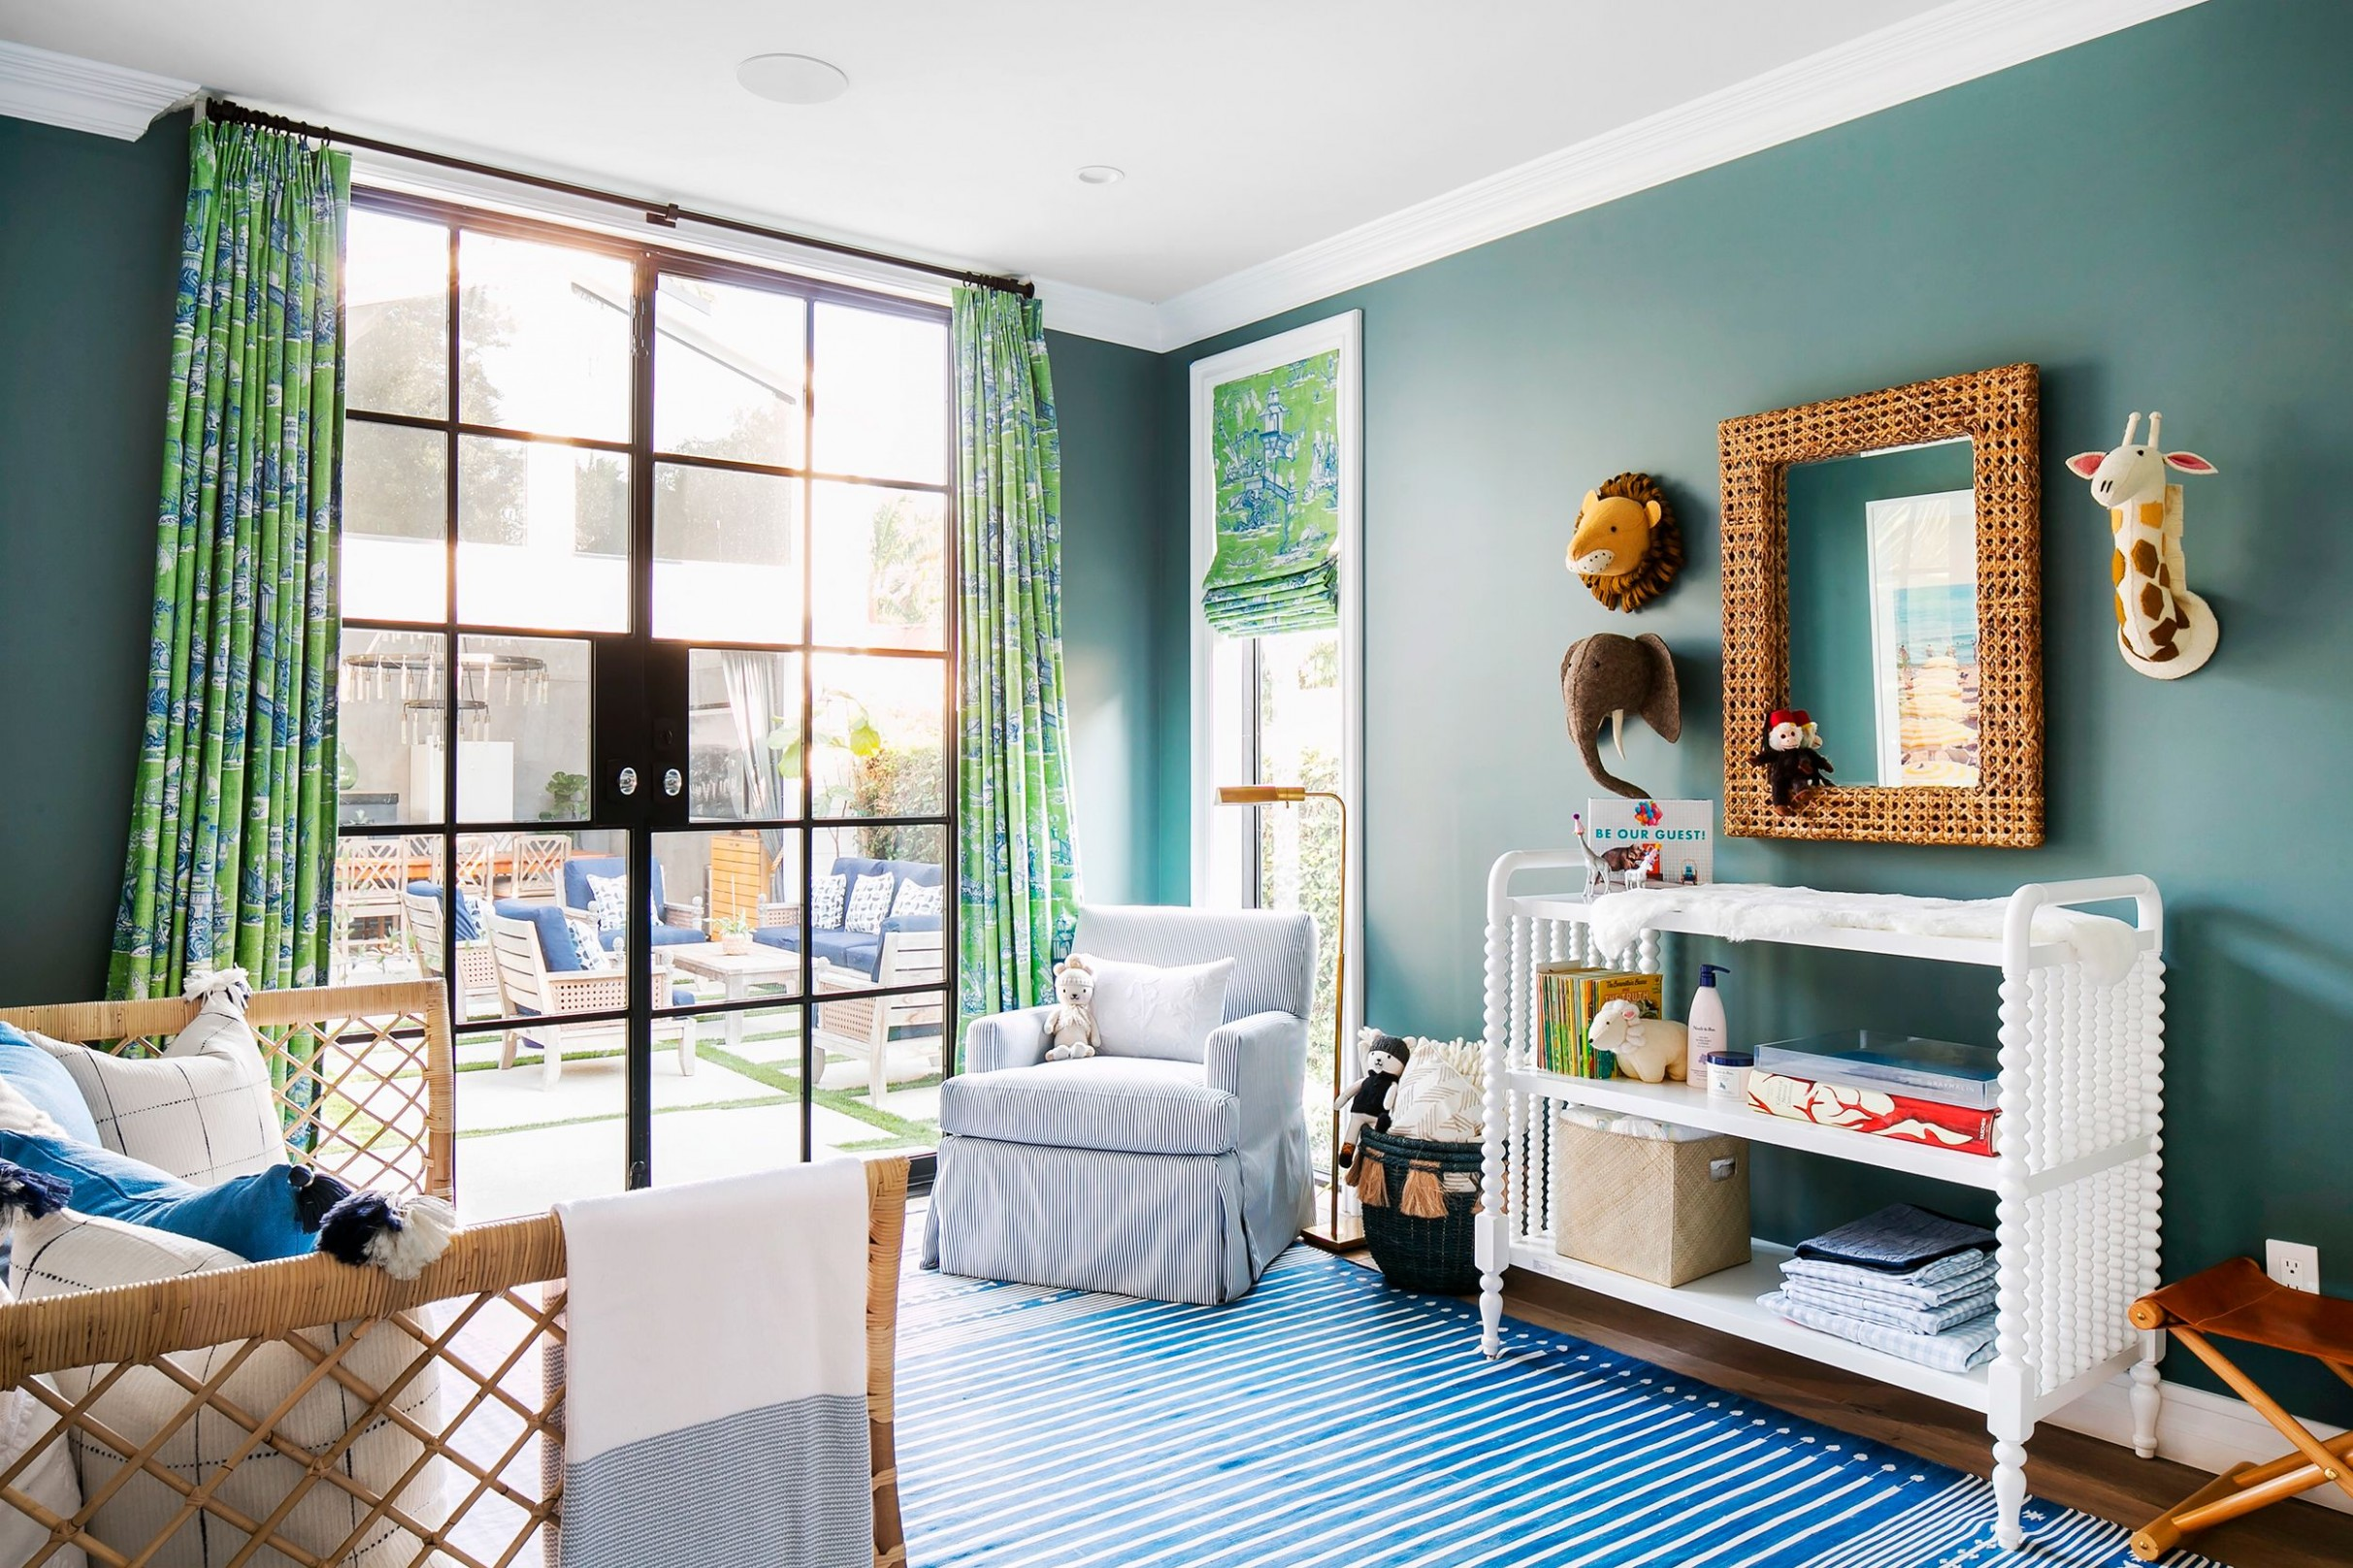 10 Cute Nursery Decorating Ideas - Baby Room Designs for Chic Parents - Baby Room Themes